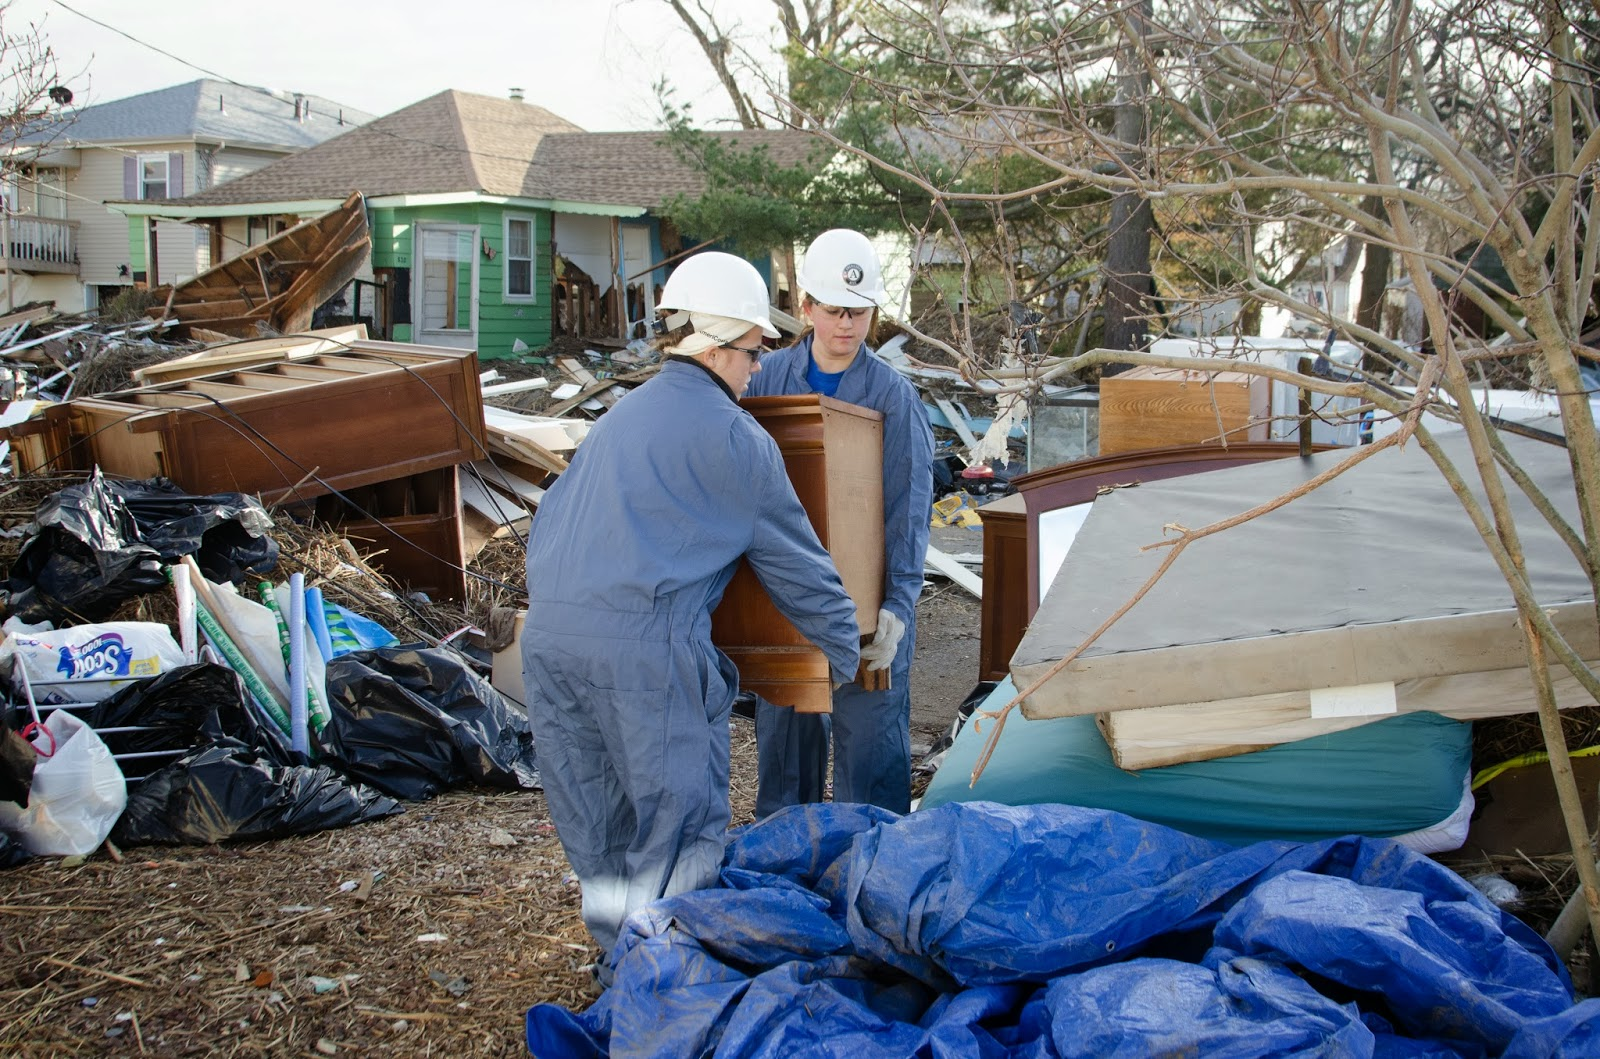 AmeriCorps NCCC members clean up debris after hurricane sandy